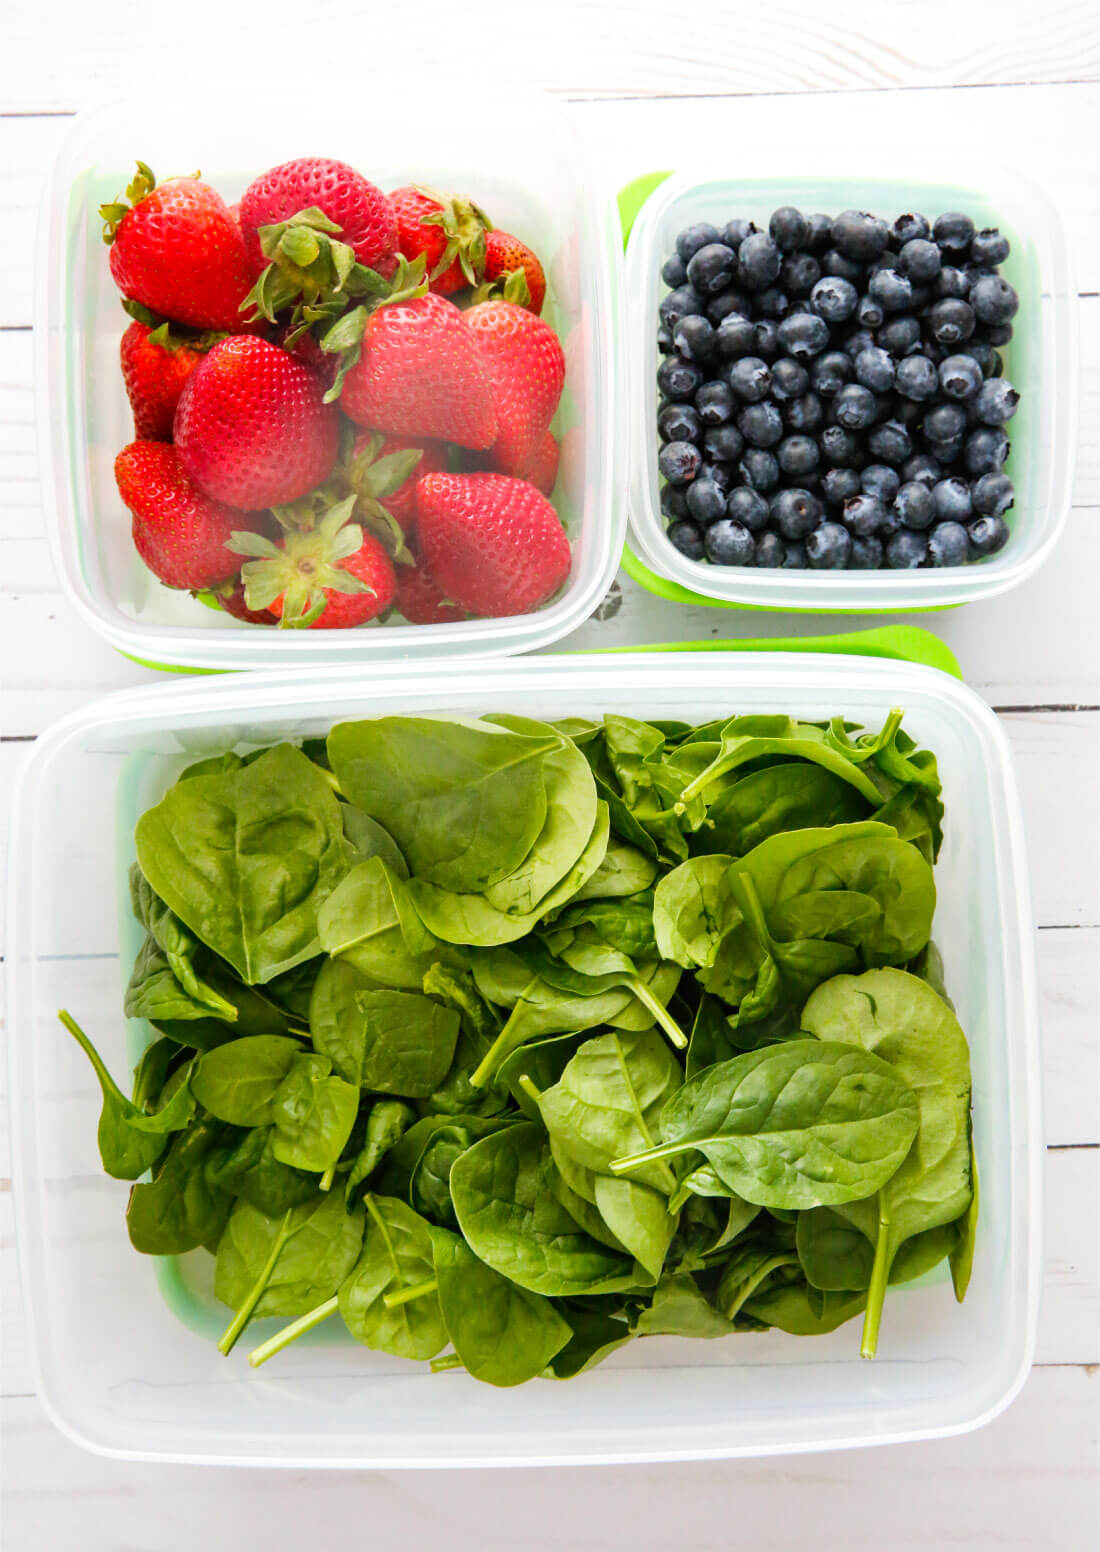 Use the new Rubbermaid FreshWorks ™ Produce Saver to help keep your produce fresher, longer! Going into the fridge on day 1.